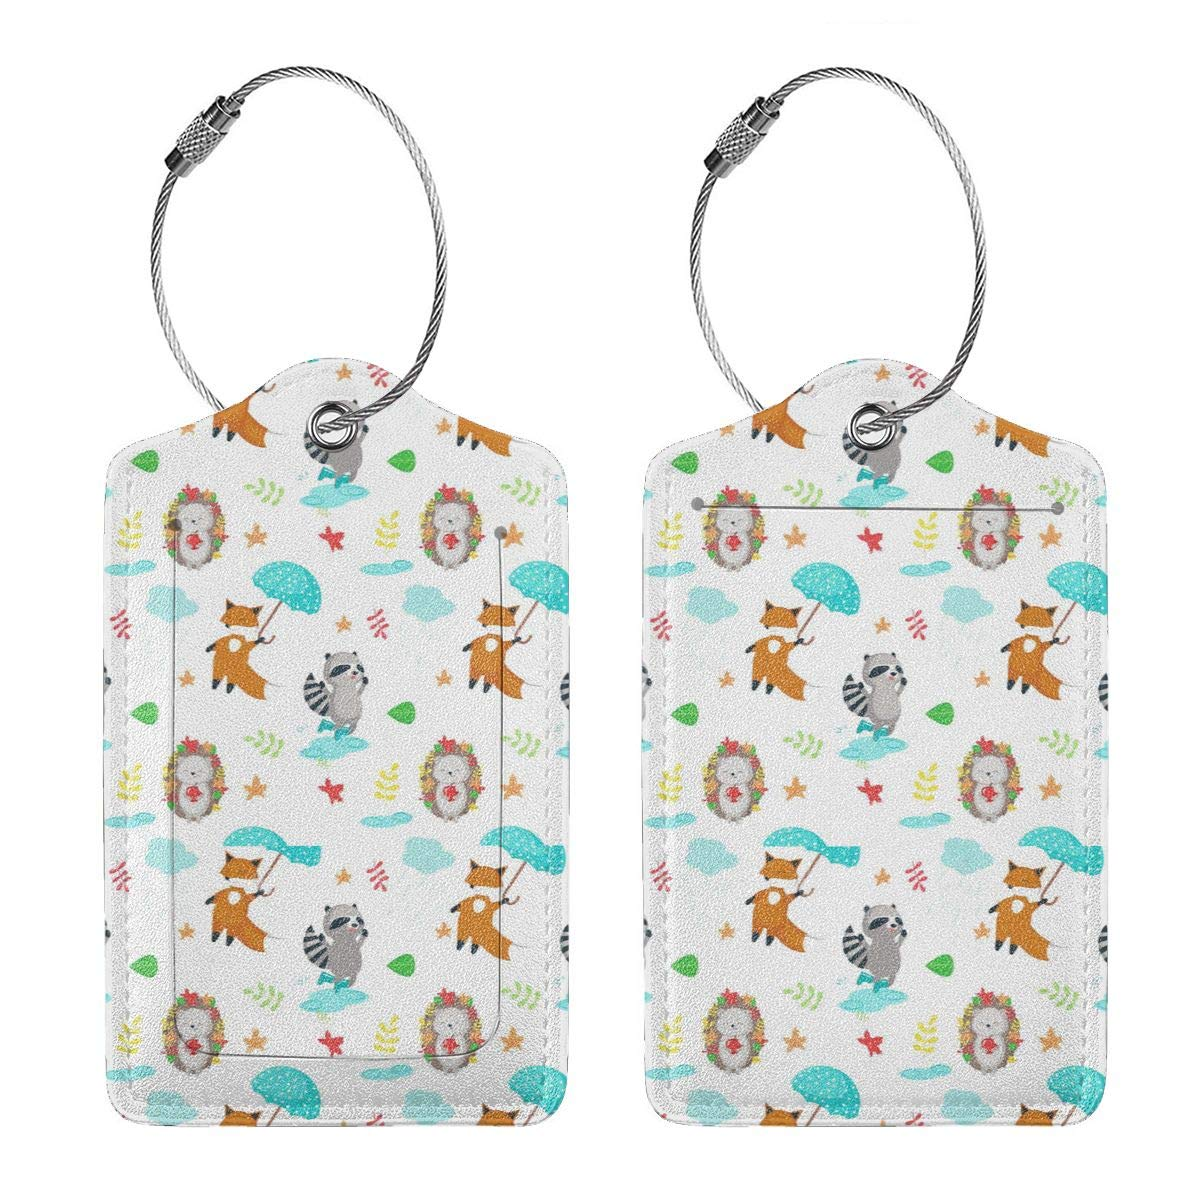 Cute-animals-fox-hedgehog-raccoon Leather Luggage Tags Personalized Flexible Custom Travel Tags With Privacy Flap